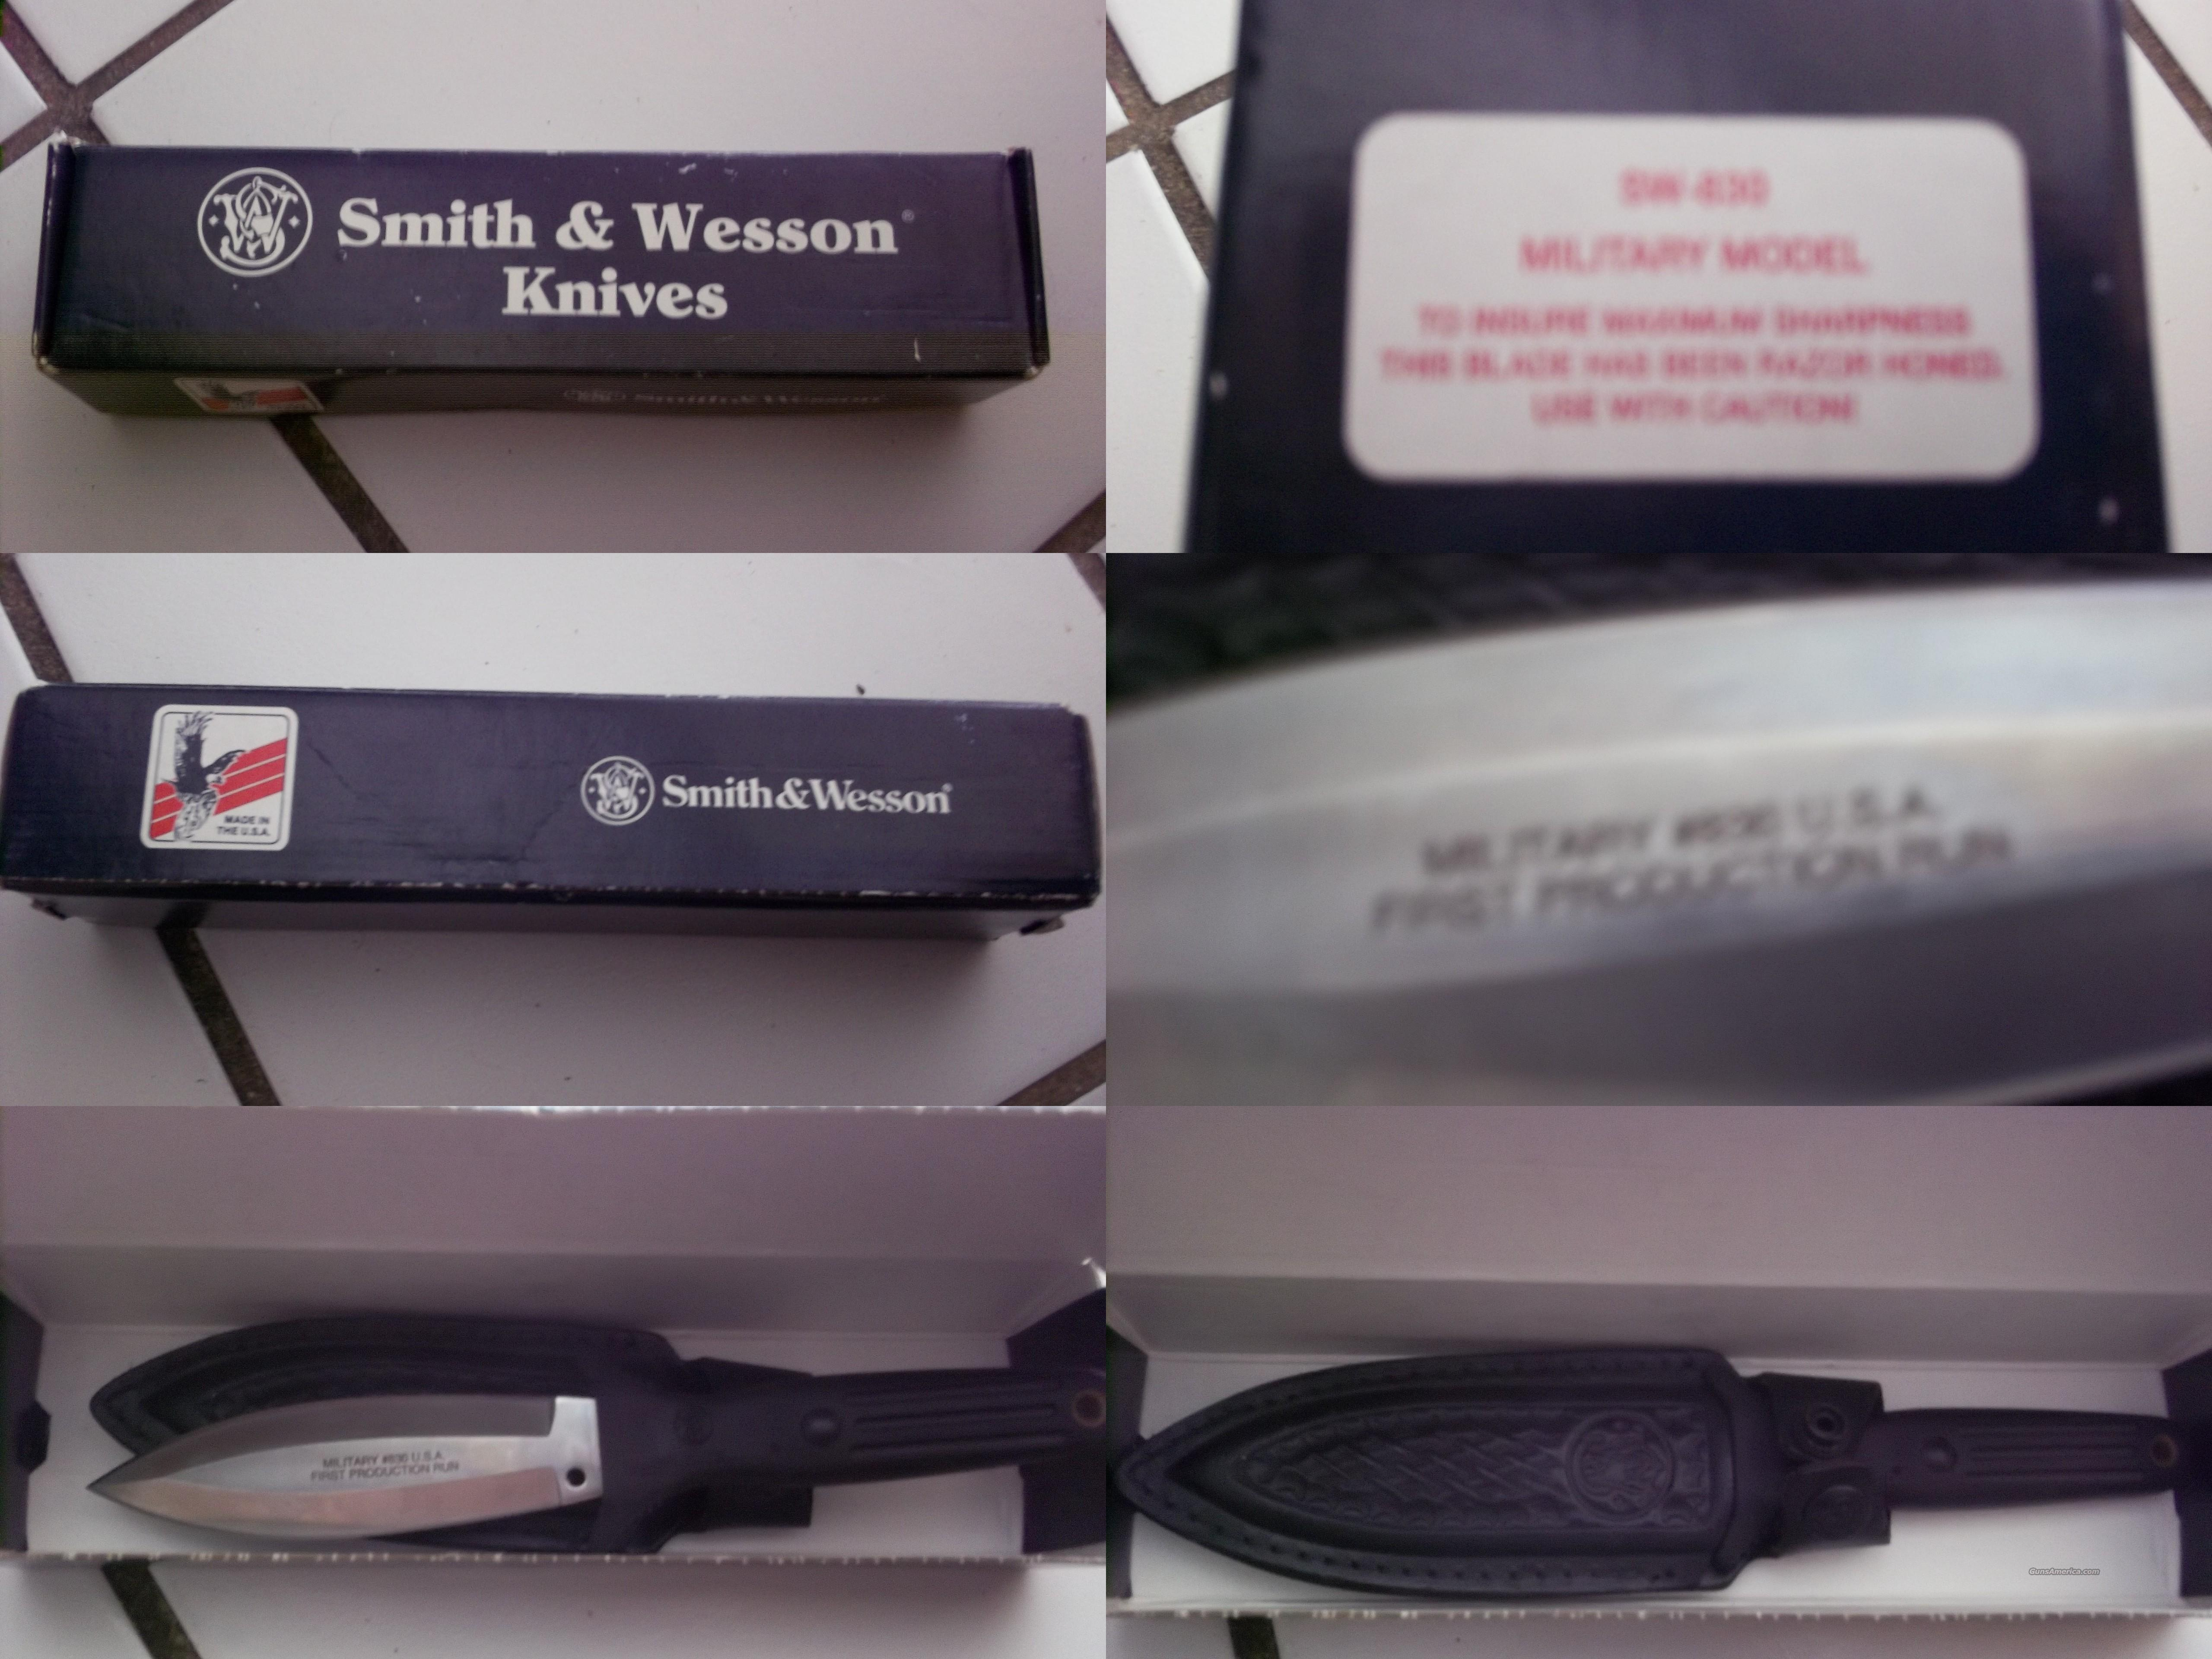 smith and wesson knive sw-830 military model  Non-Guns > Knives/Swords > Military > Non-Bayonets